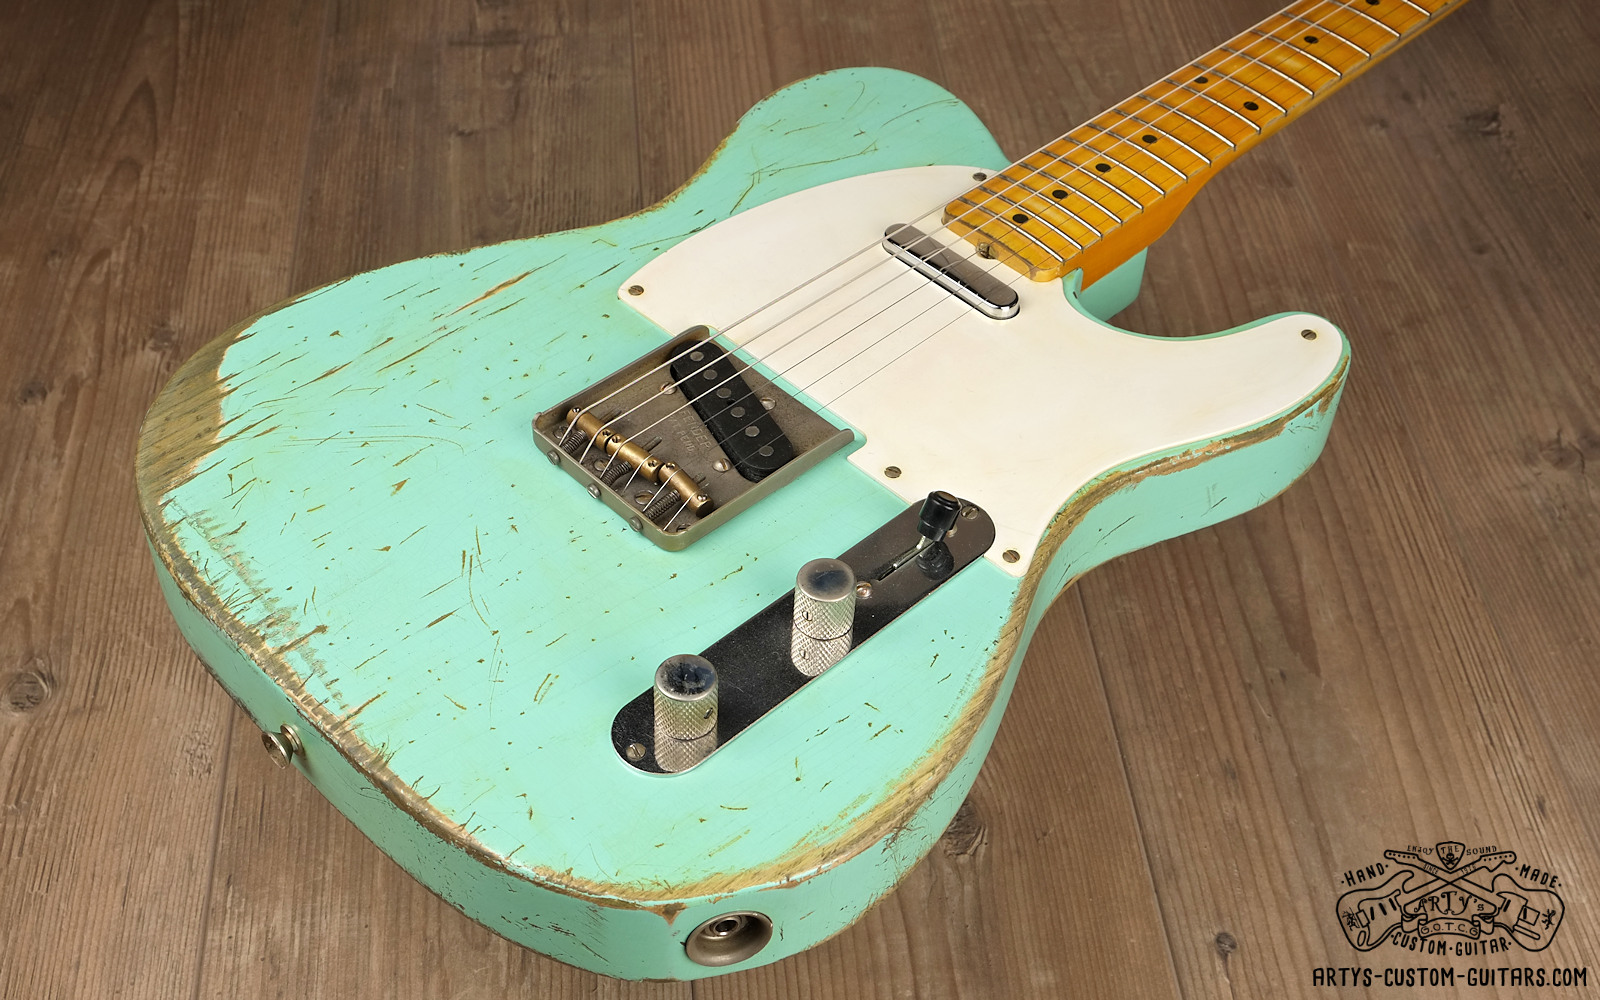 fender telecaster custom wiring diagram images fender telecaster custom wiring diagram gallery arty s pre wired guitar kits vintage handmade pickups and